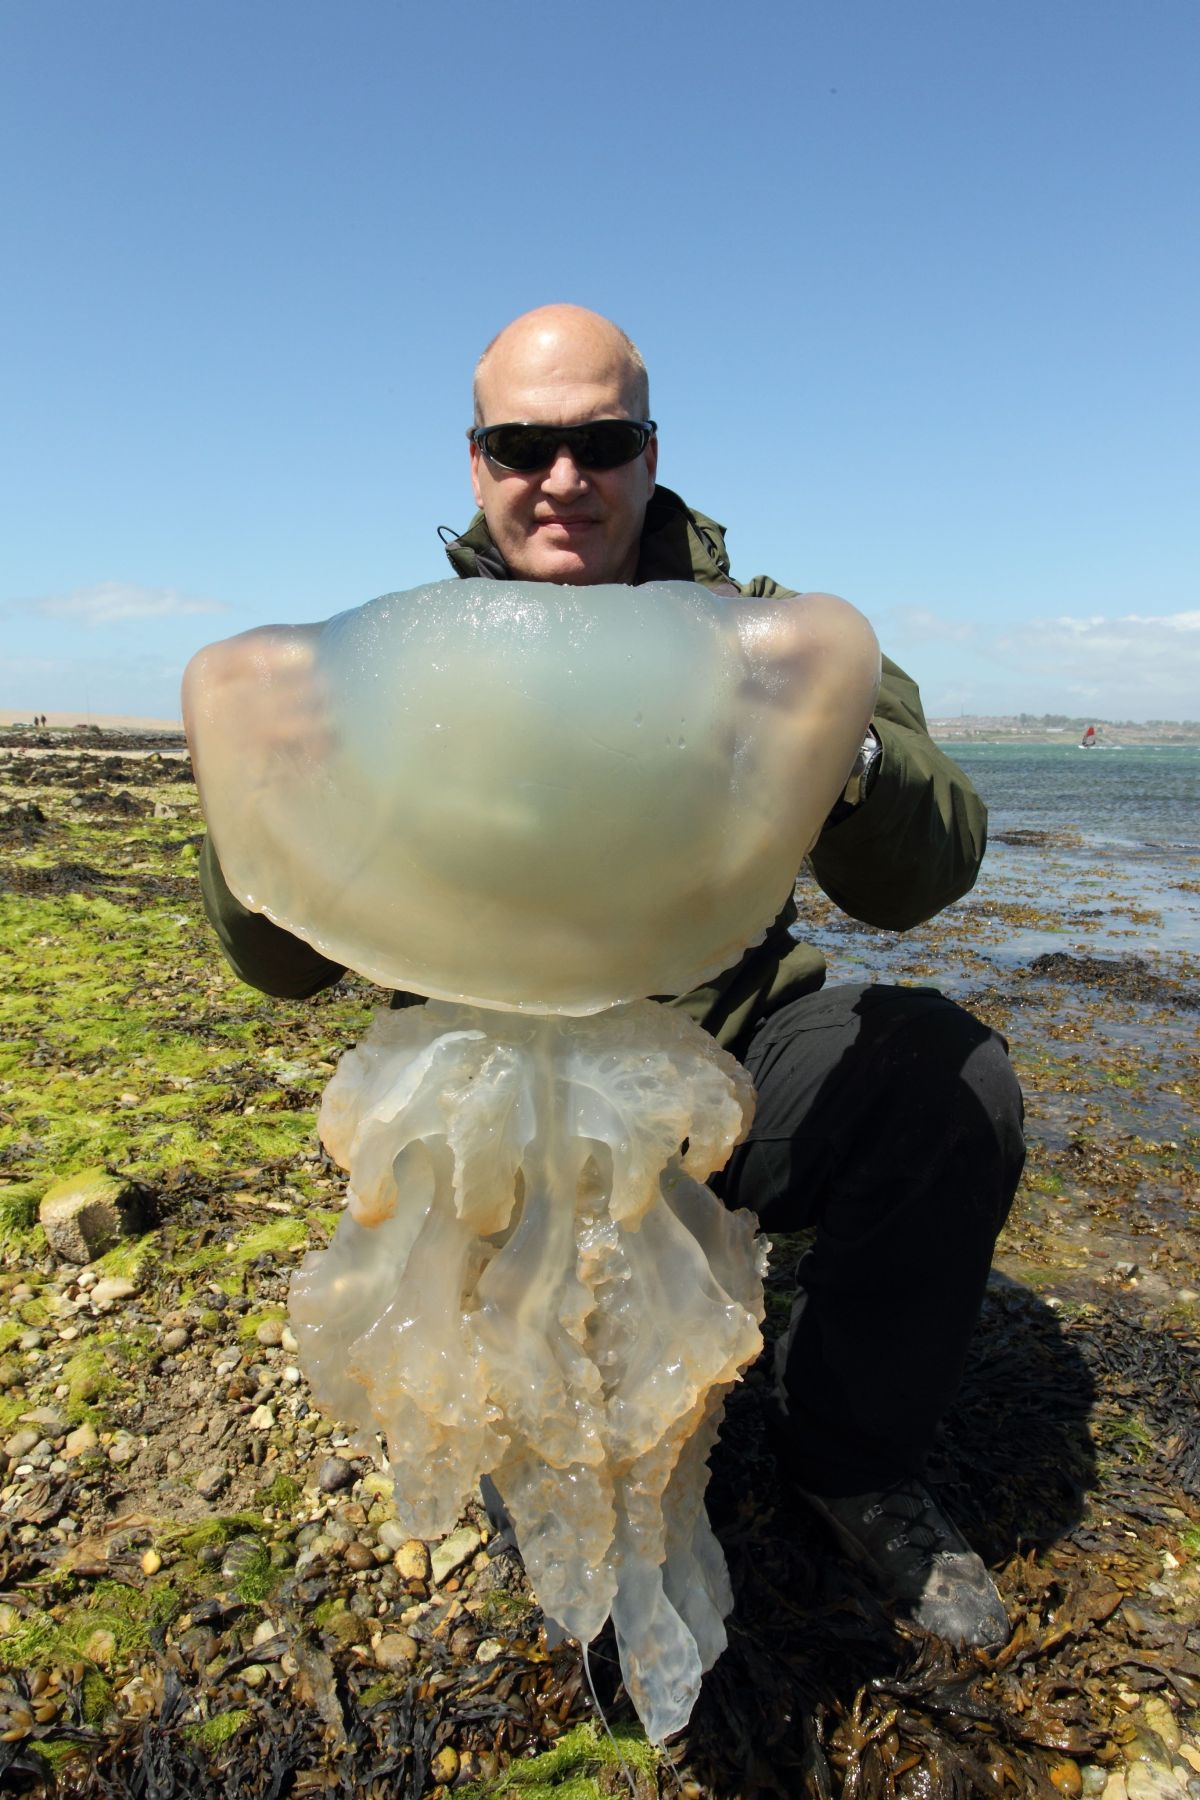 Steve Trewhella with one of the jellyfish